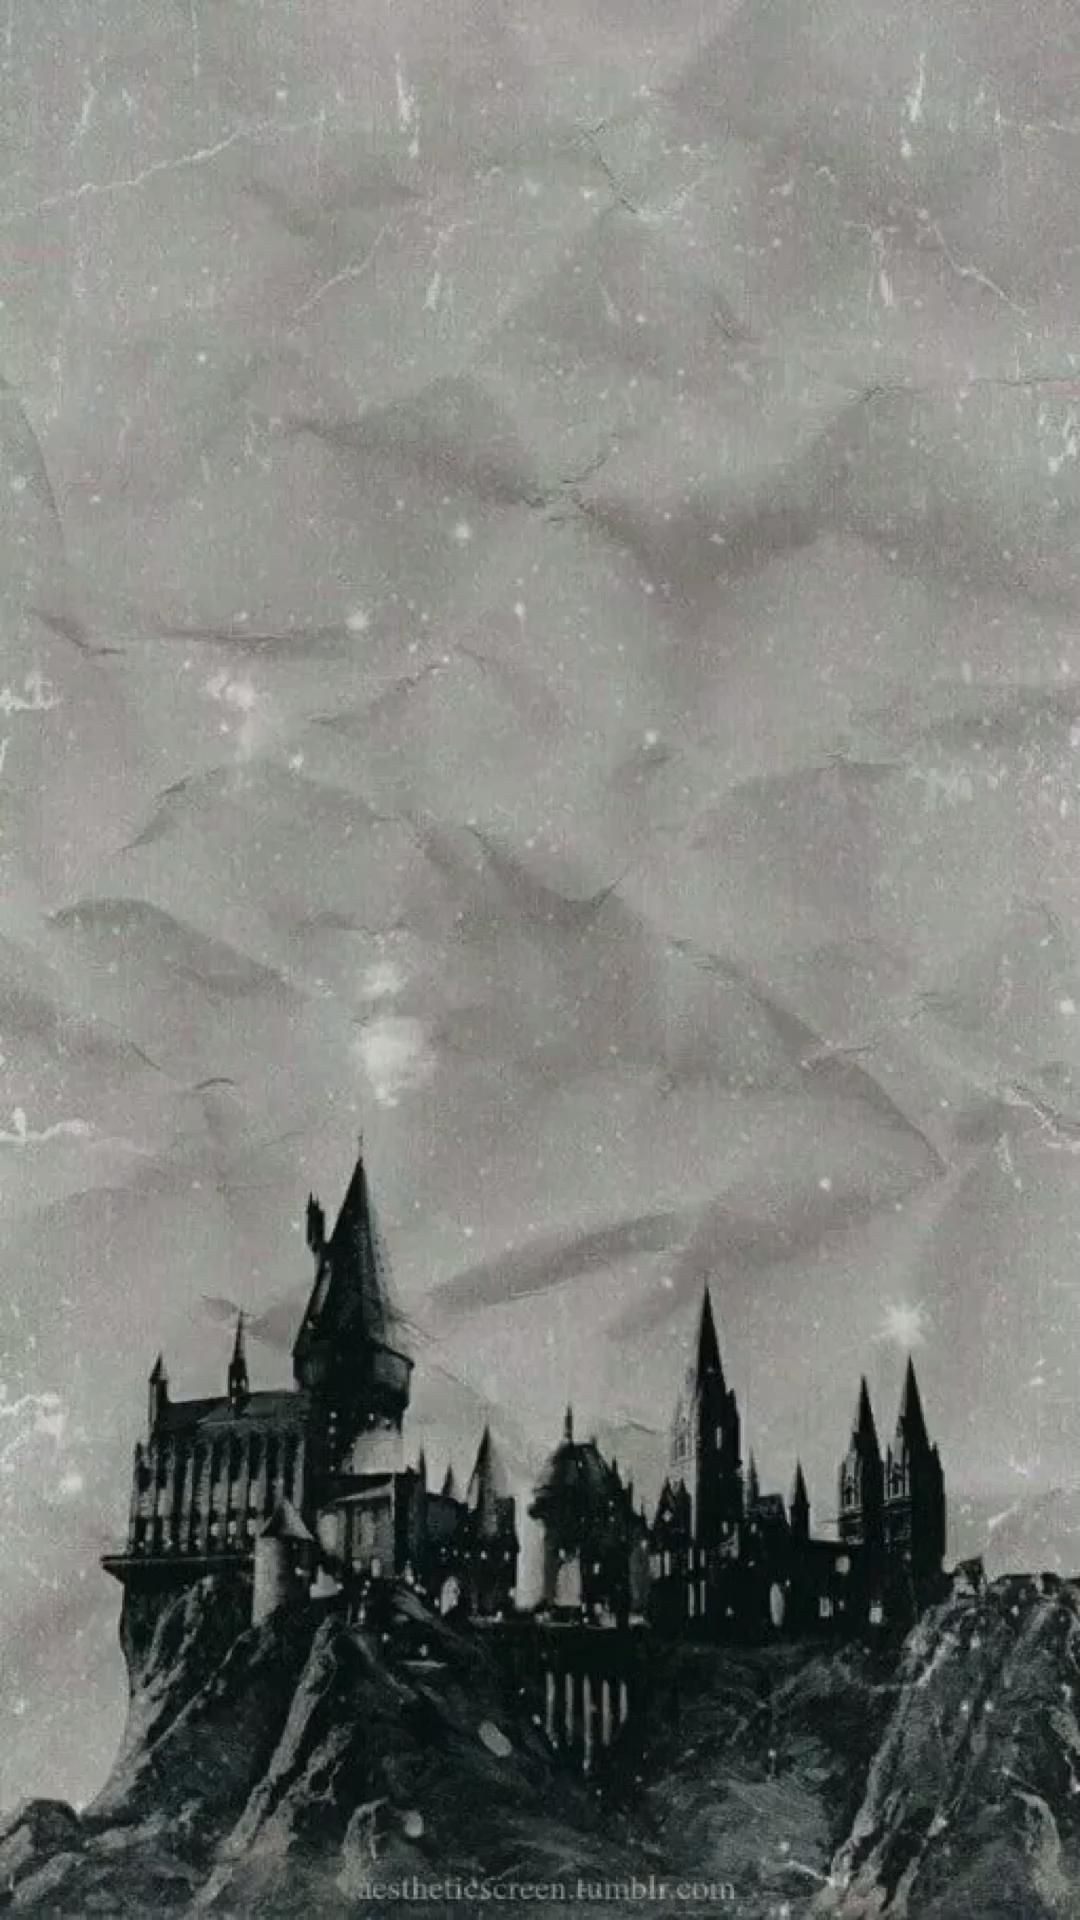 Hogwarts wallpapers (I do not take credit for these designs they are found on internet research)